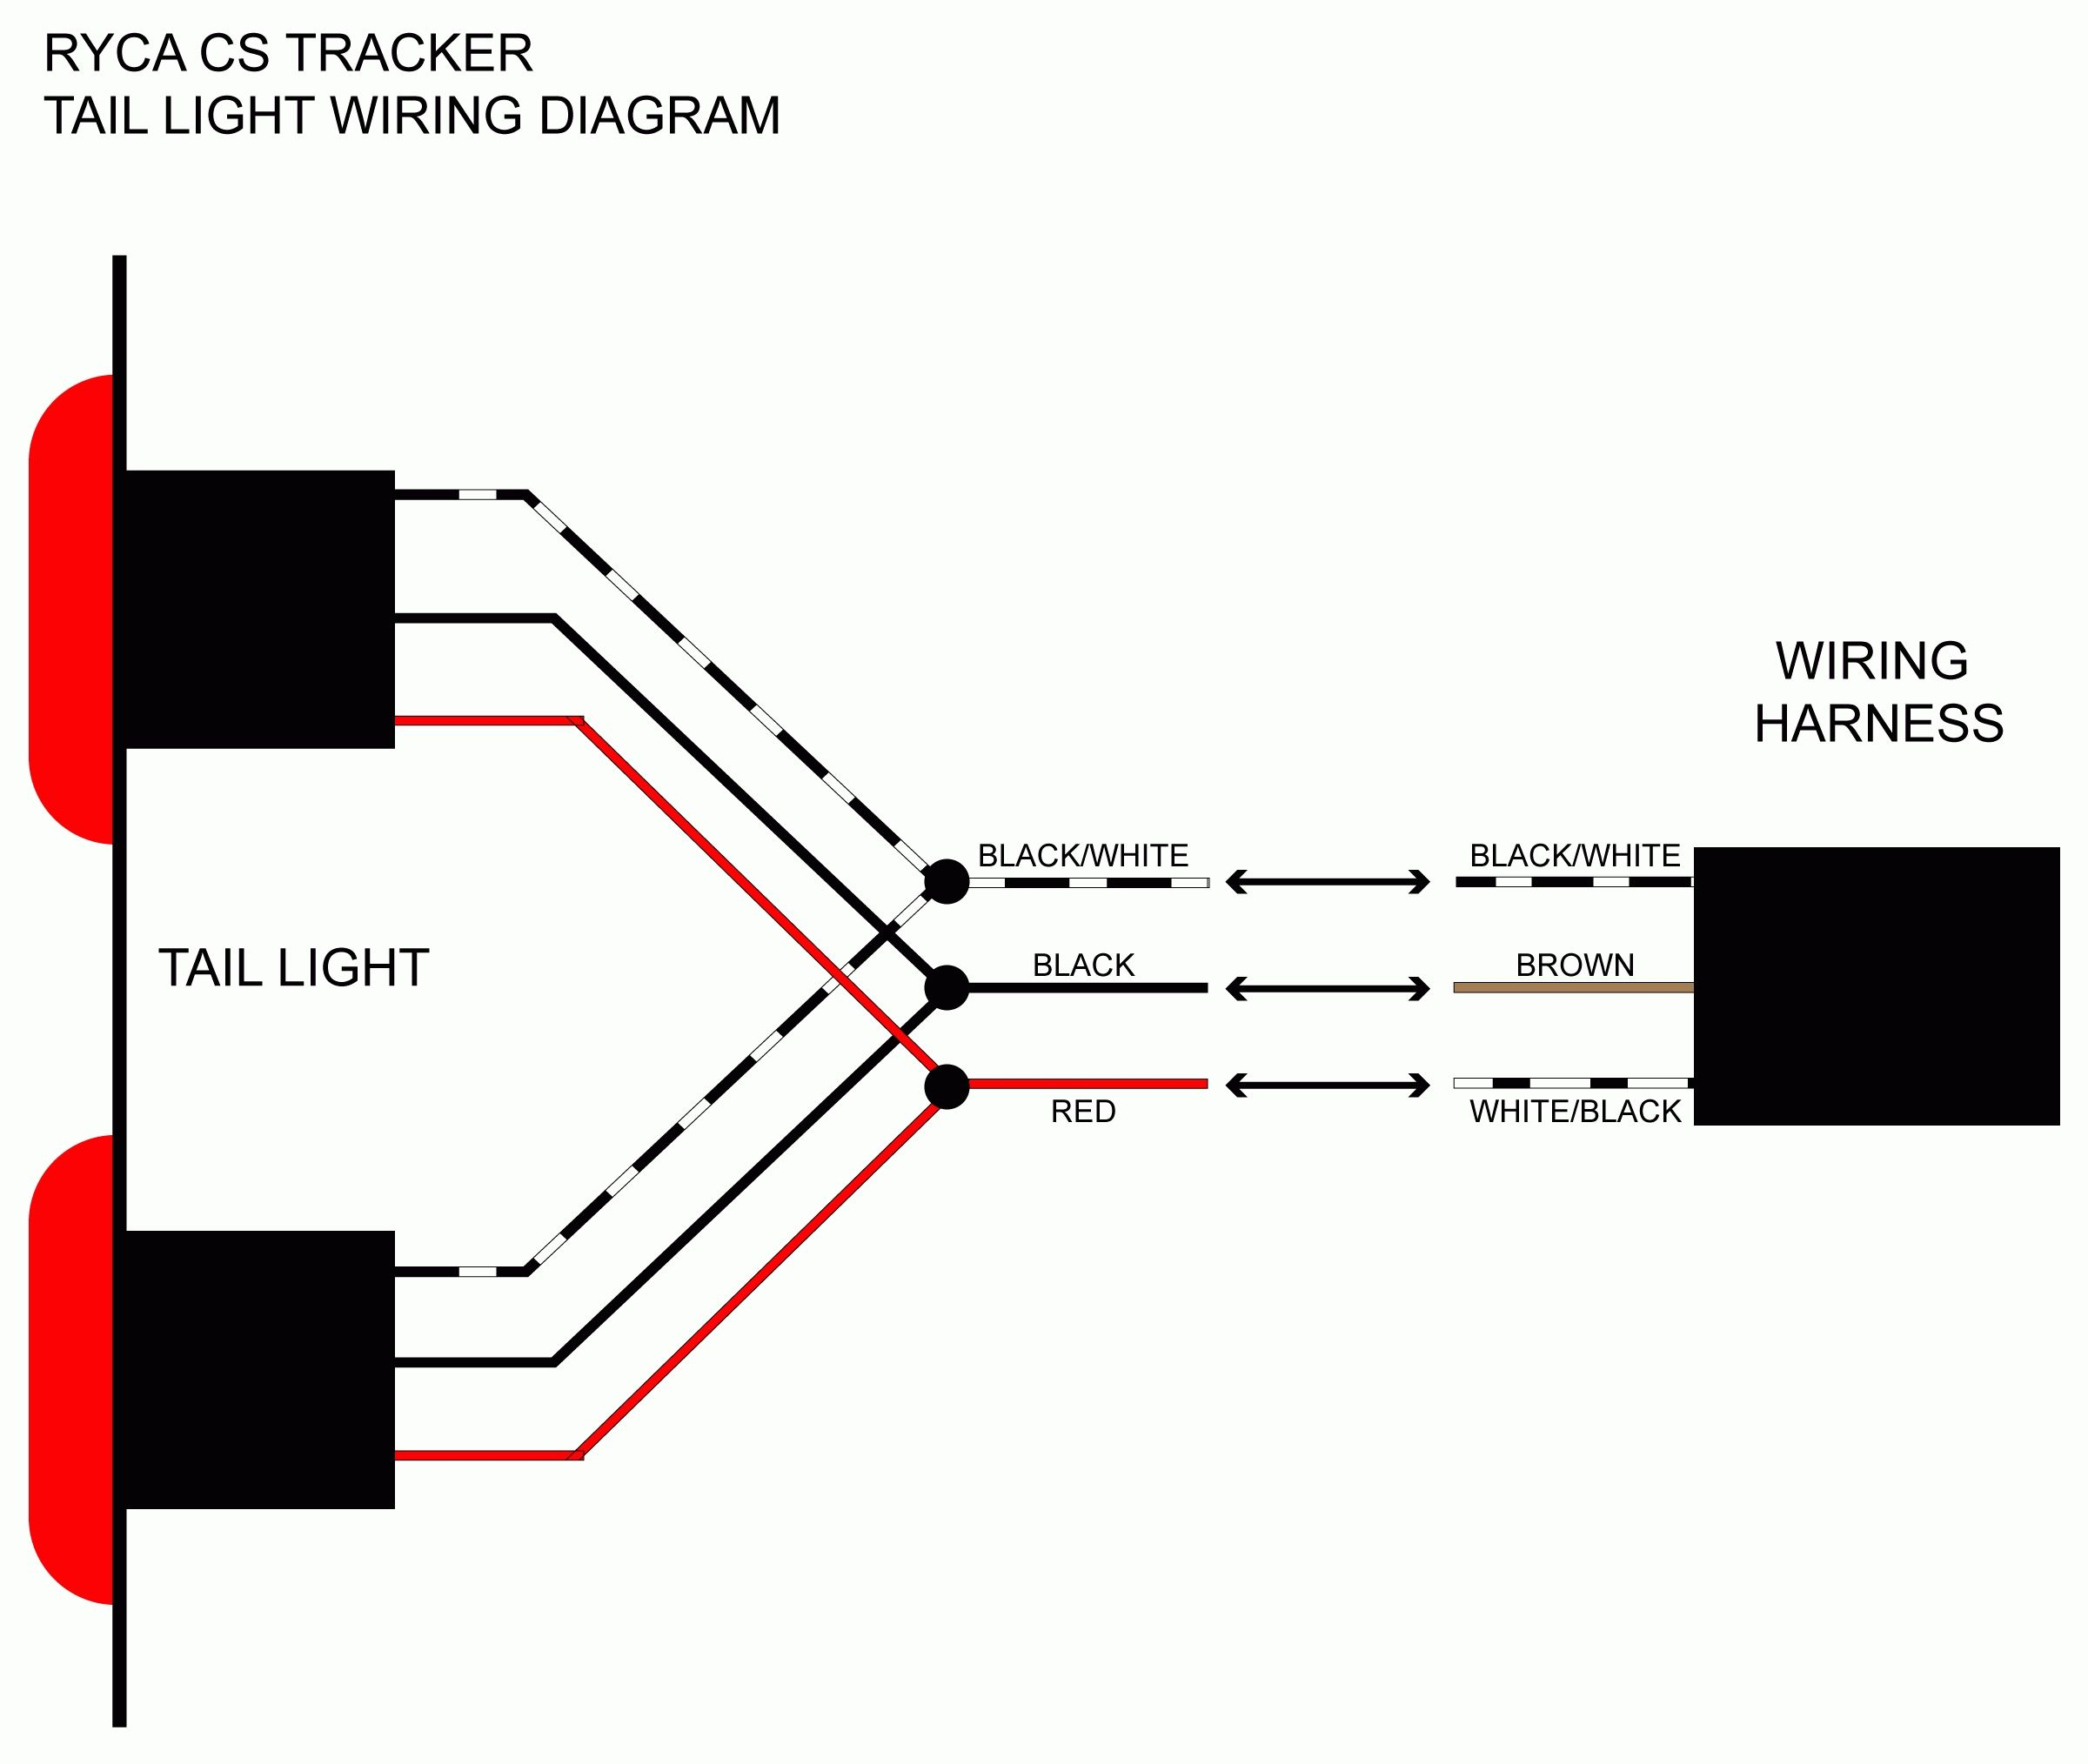 hight resolution of 3 wire led light wiring diagram wiring diagram world 3 wire led strobe light wiring diagram led light wire diagram 3